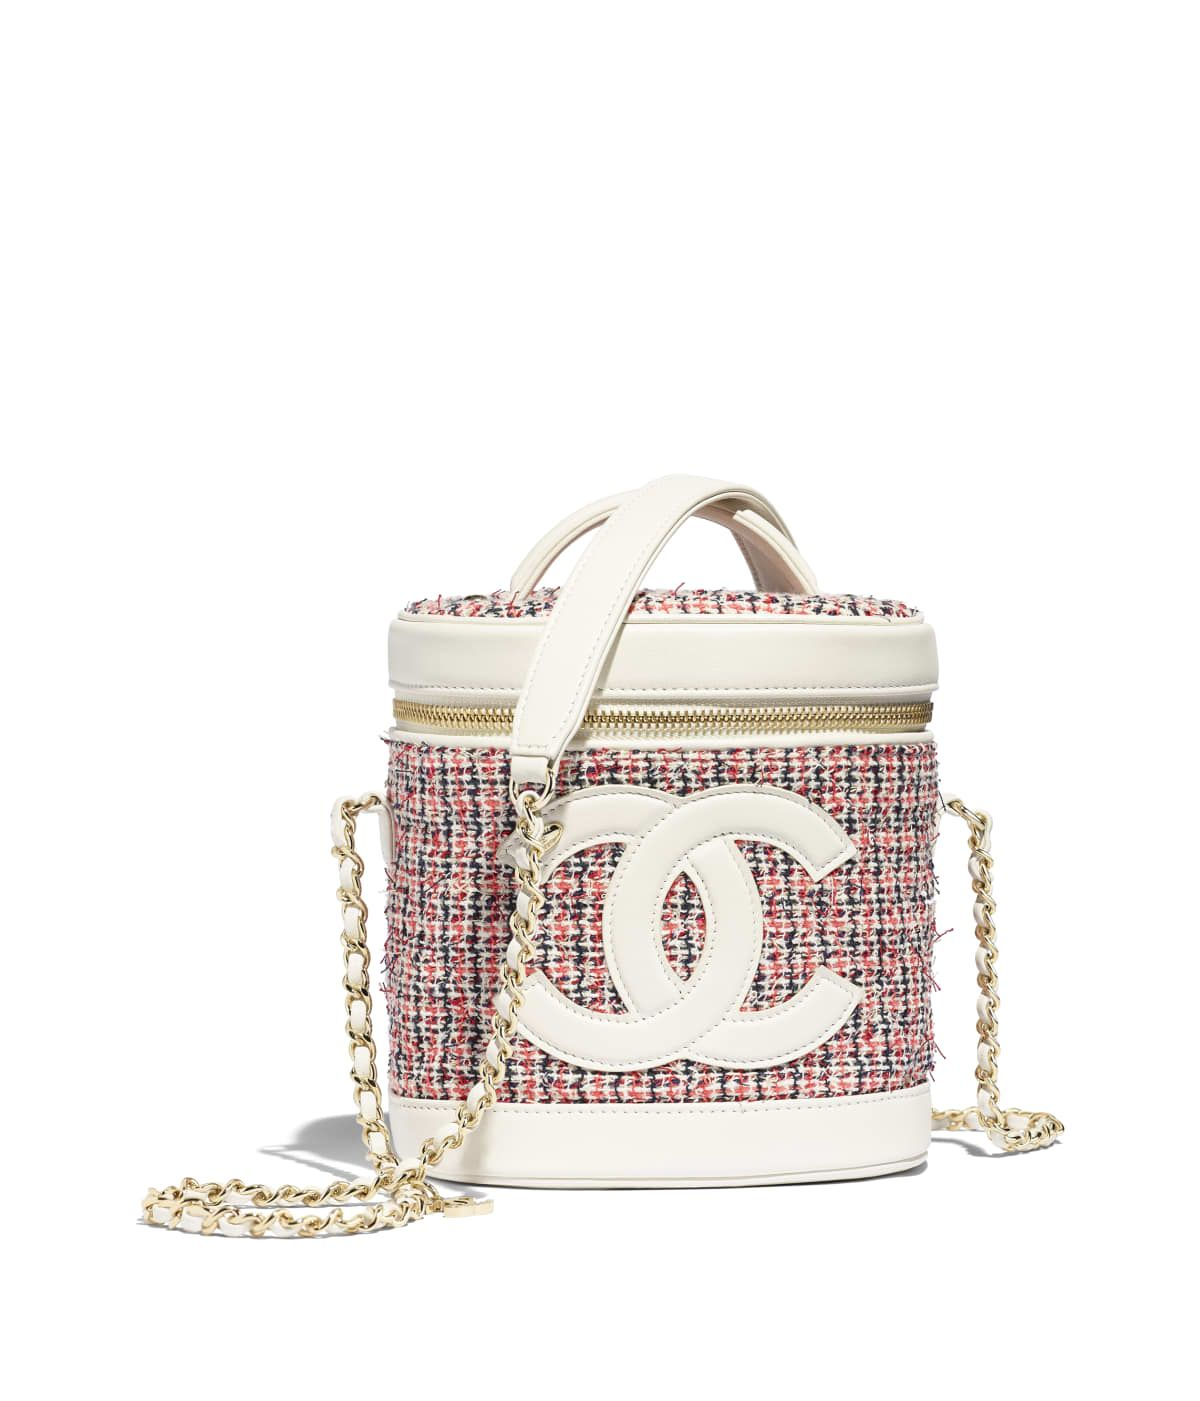 a2b4b316d Handbags of the Spring-Summer 2019 Pre-Collection CHANEL Fashion collection  : Vanity Case, tweed, lambskin & gold-tone metal, red, ecru, navy blue &  white ...